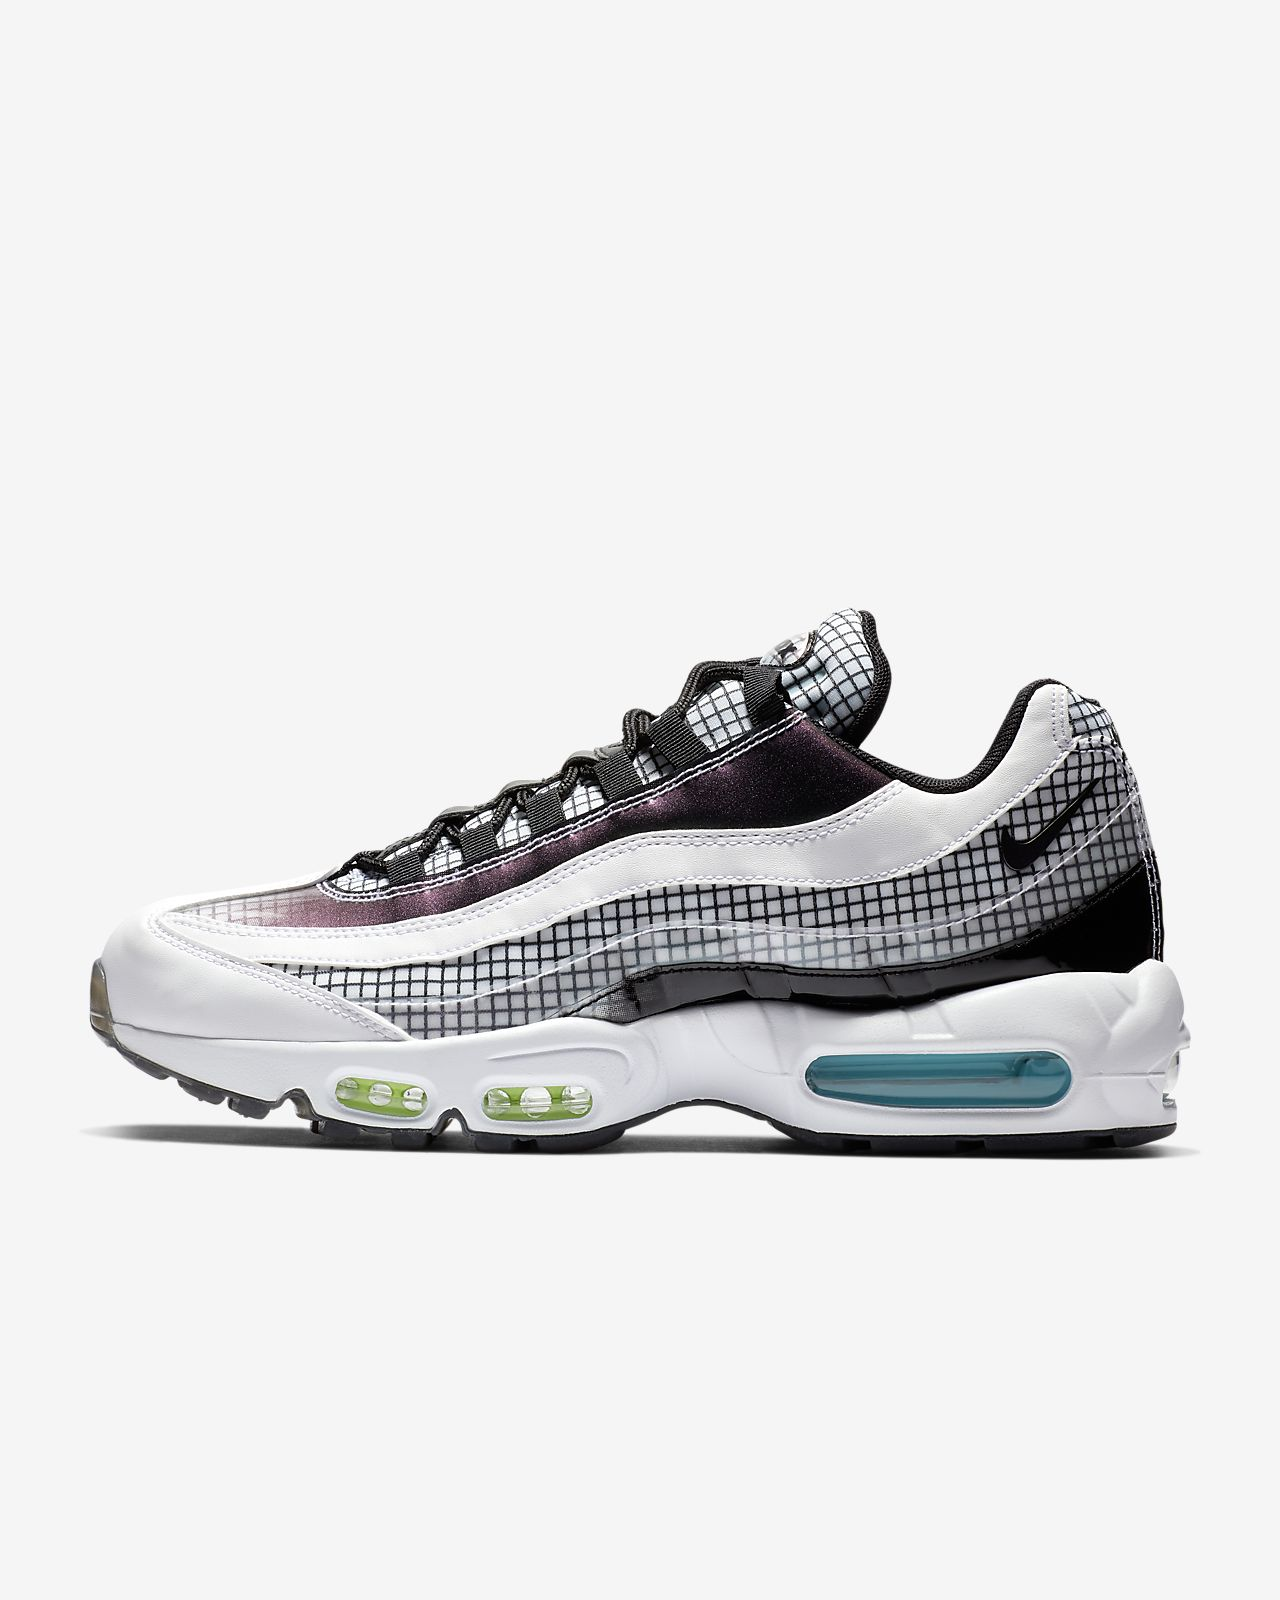 on sale 6b68e 48ea7 ... Nike Air Max 95 LV8 Men s Shoe